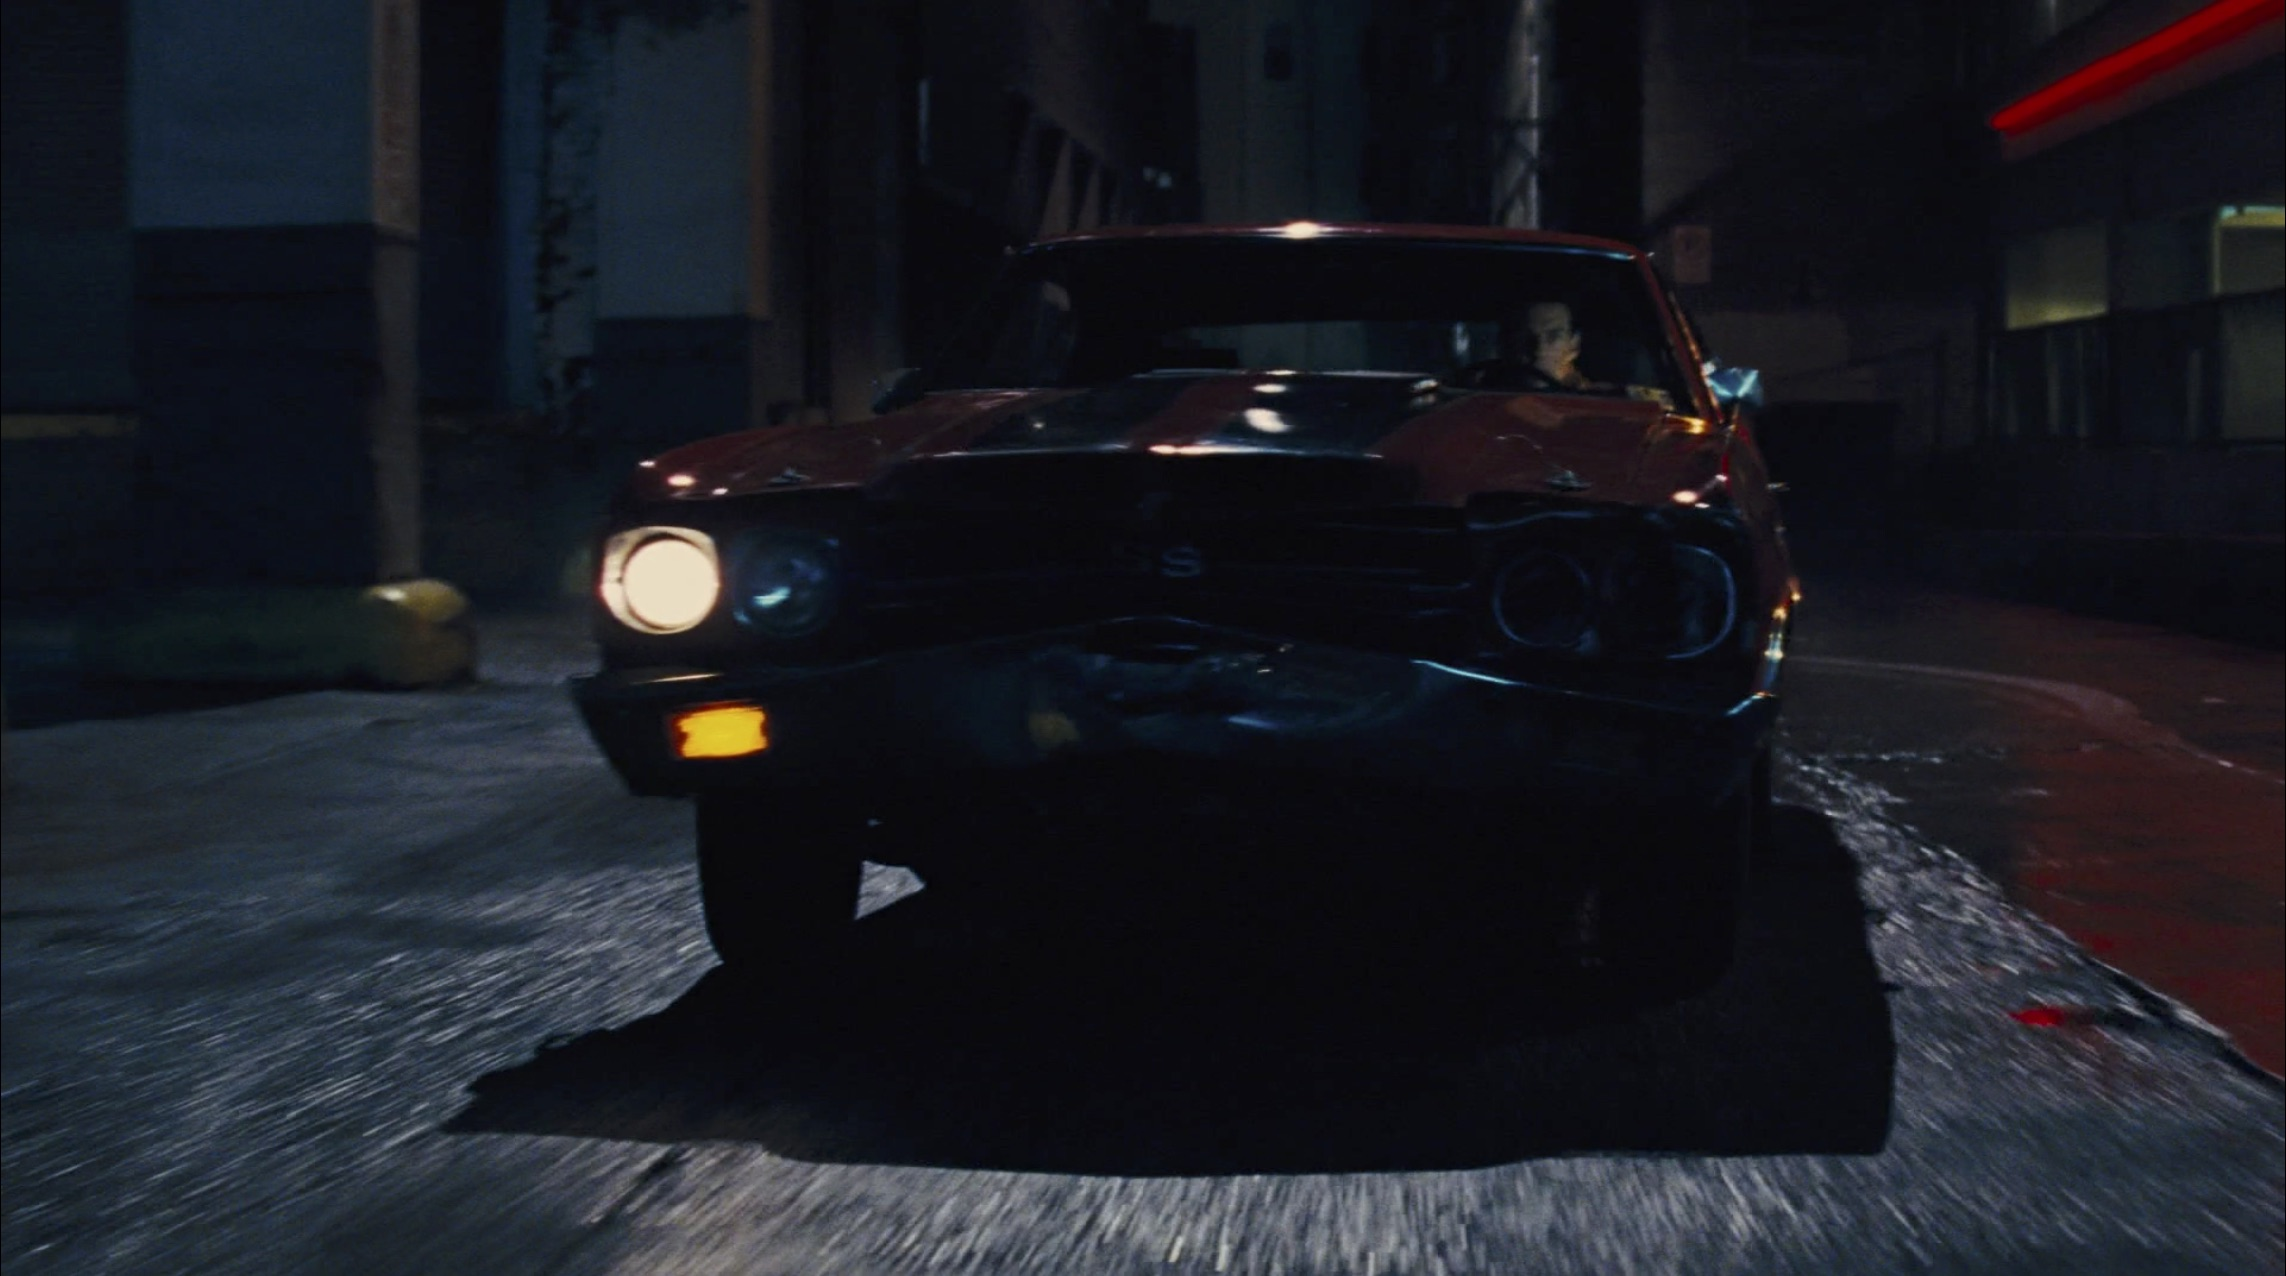 jack reacher chevelle night time broken